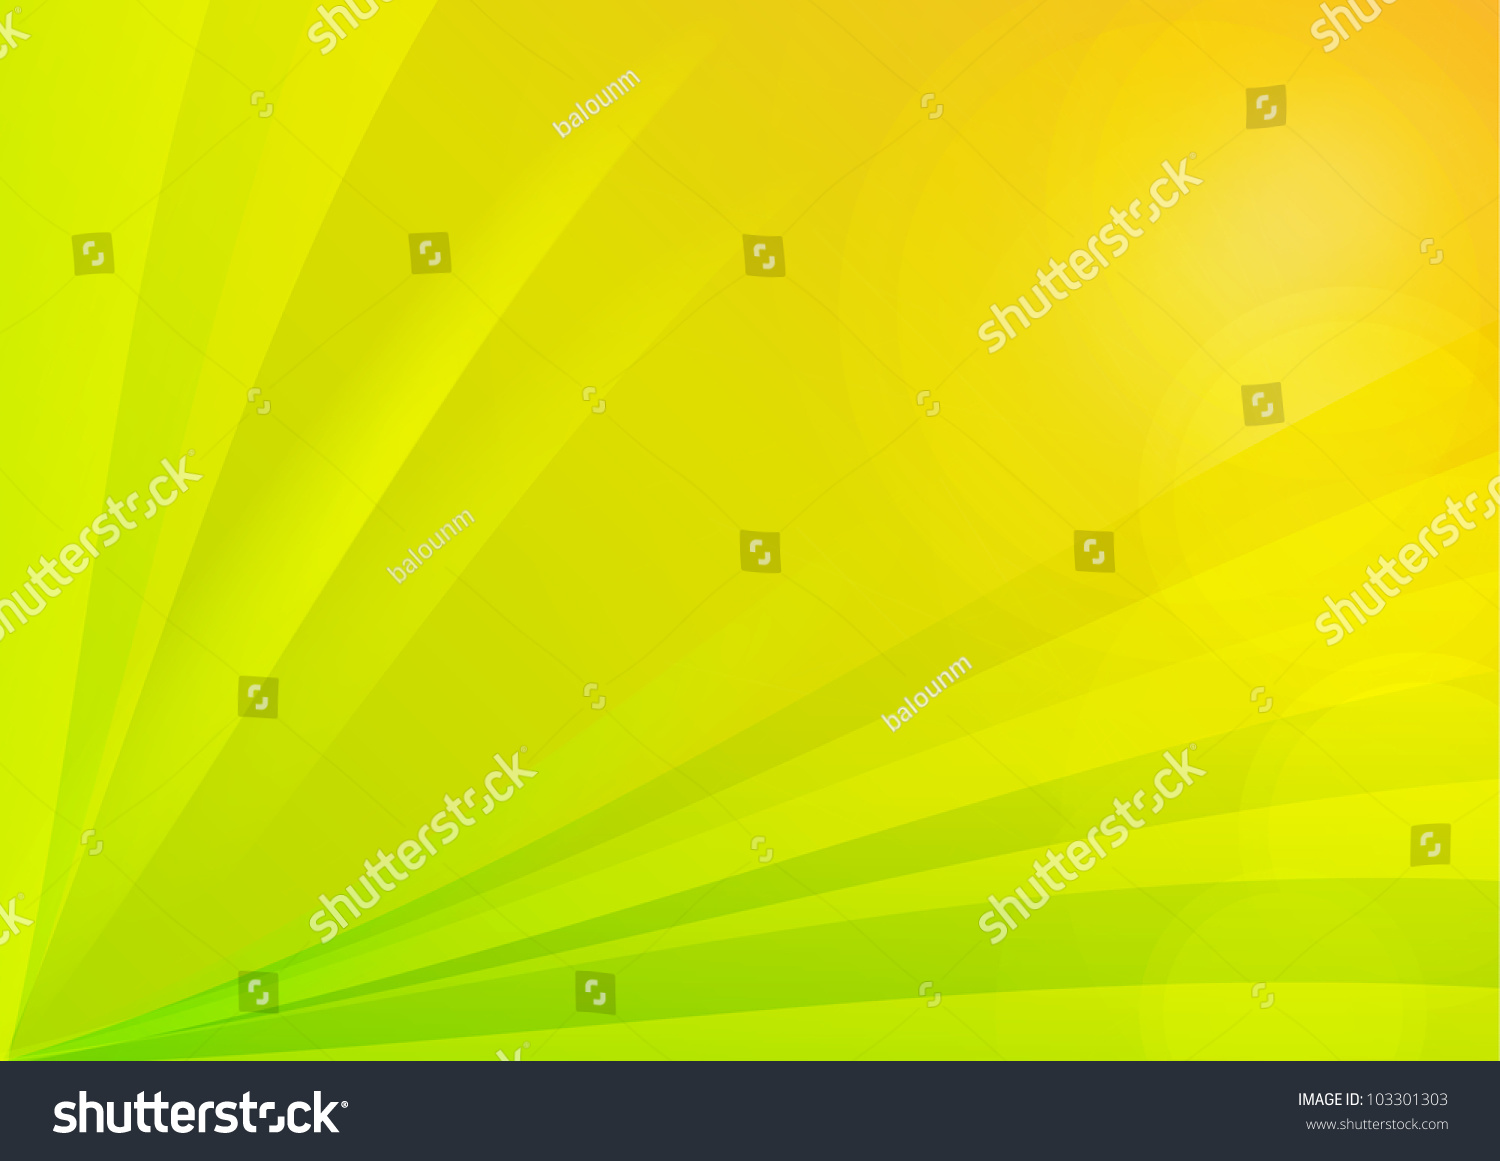 Abstract Green And Yellow Background Wallpaper Stock Photo ...